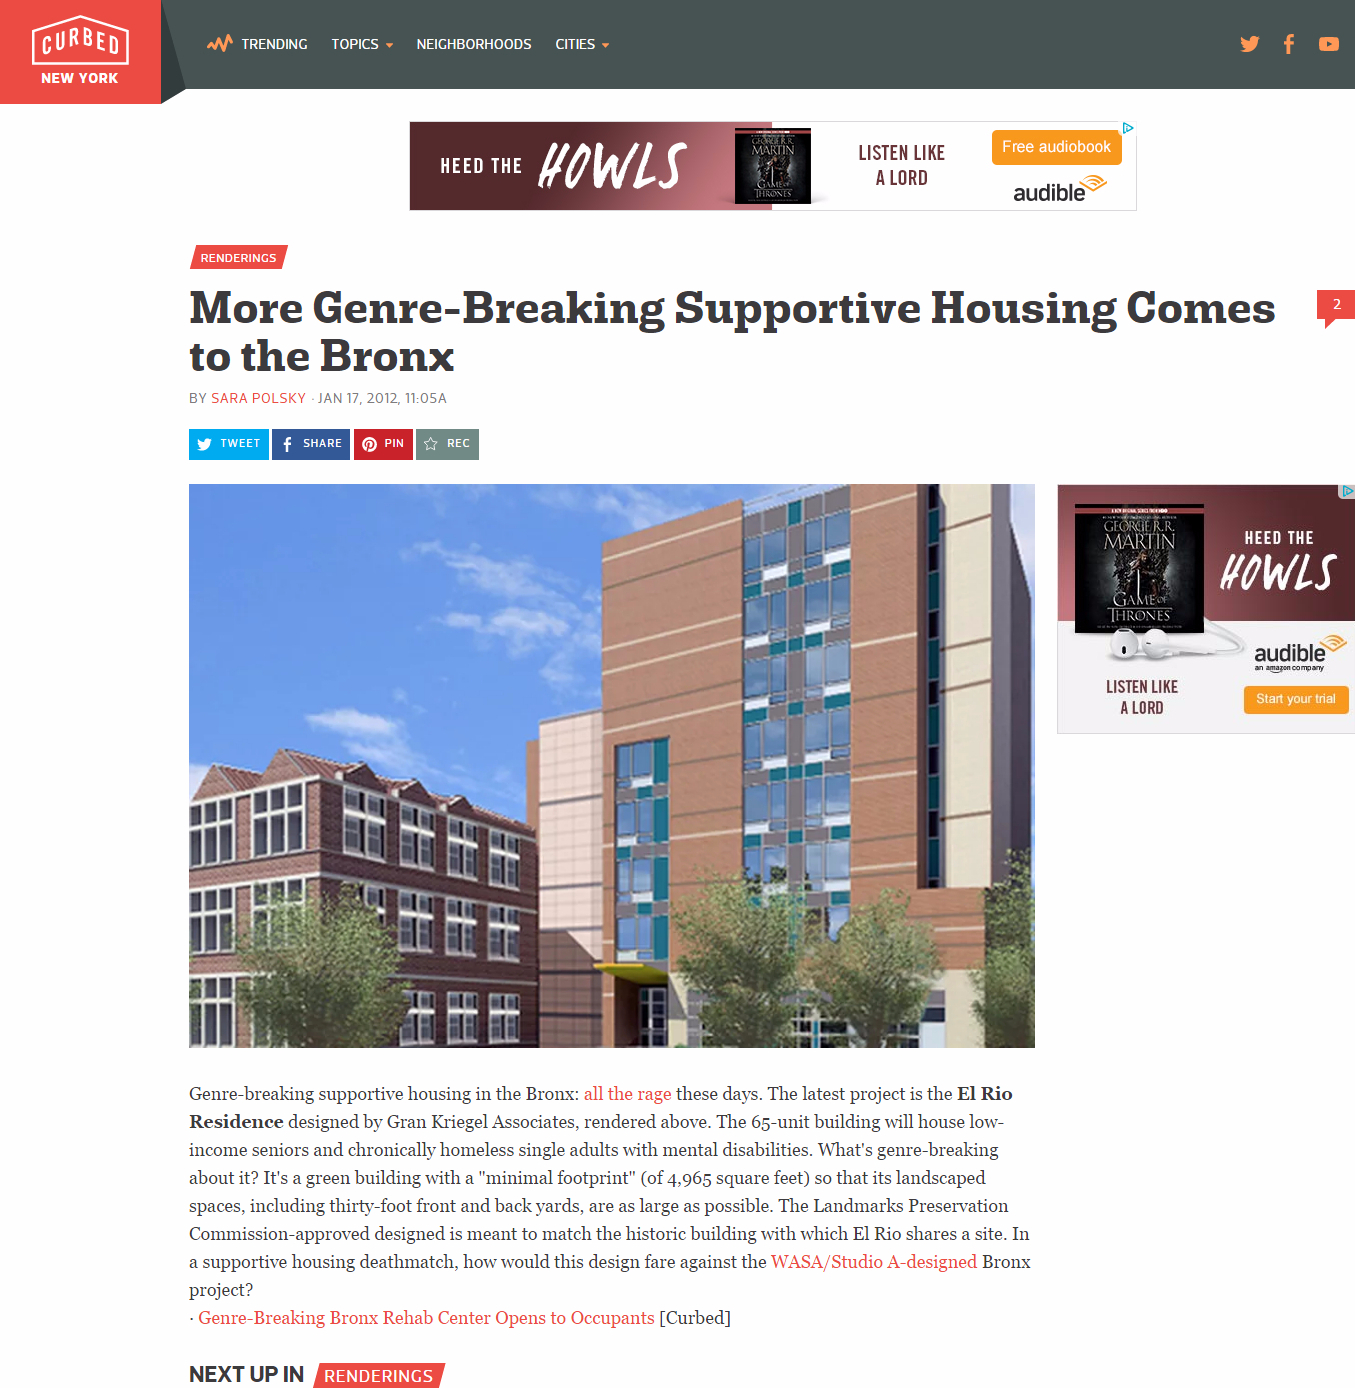 Gran Kriegel Architects new supportive housing design for Volunteers of America is featured in the NY Post